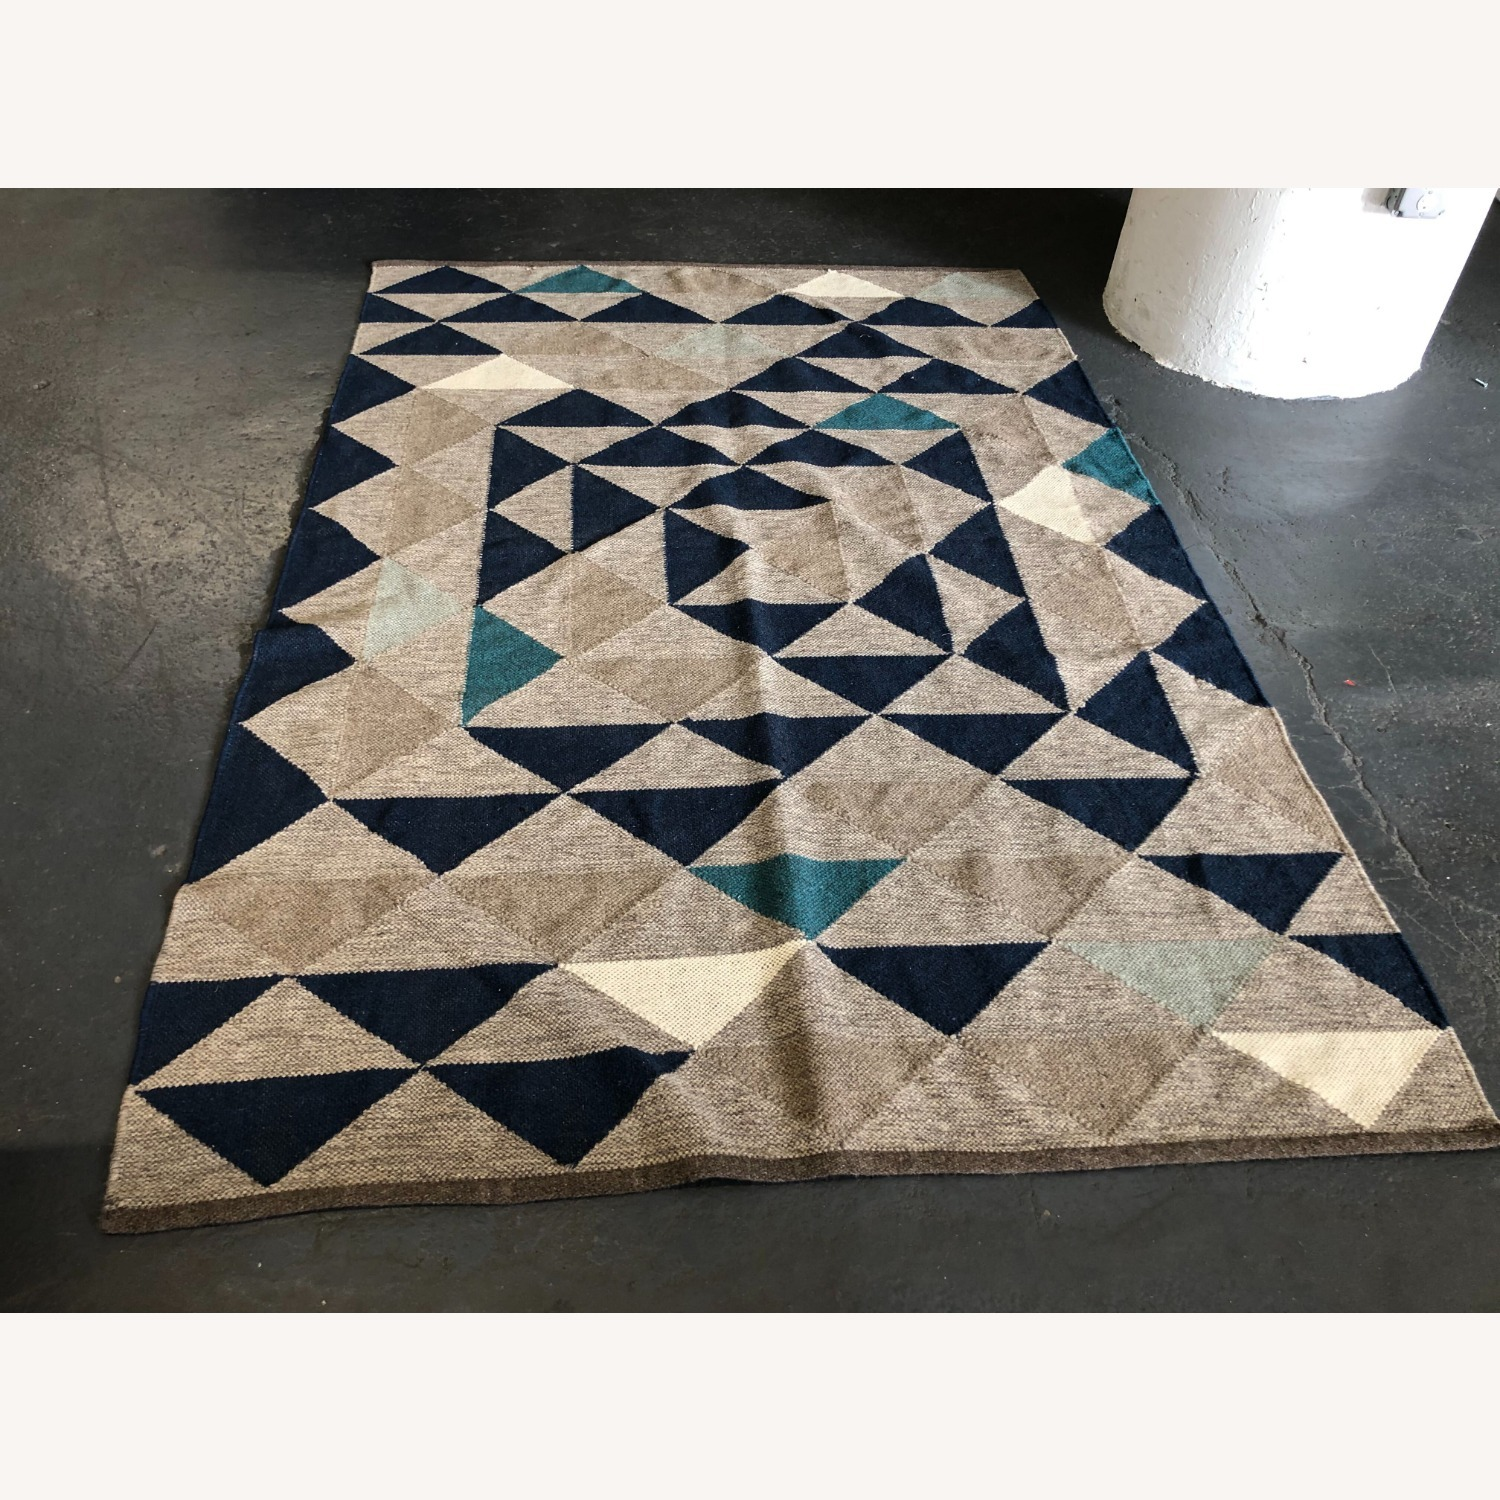 West Elm Carpet - image-1